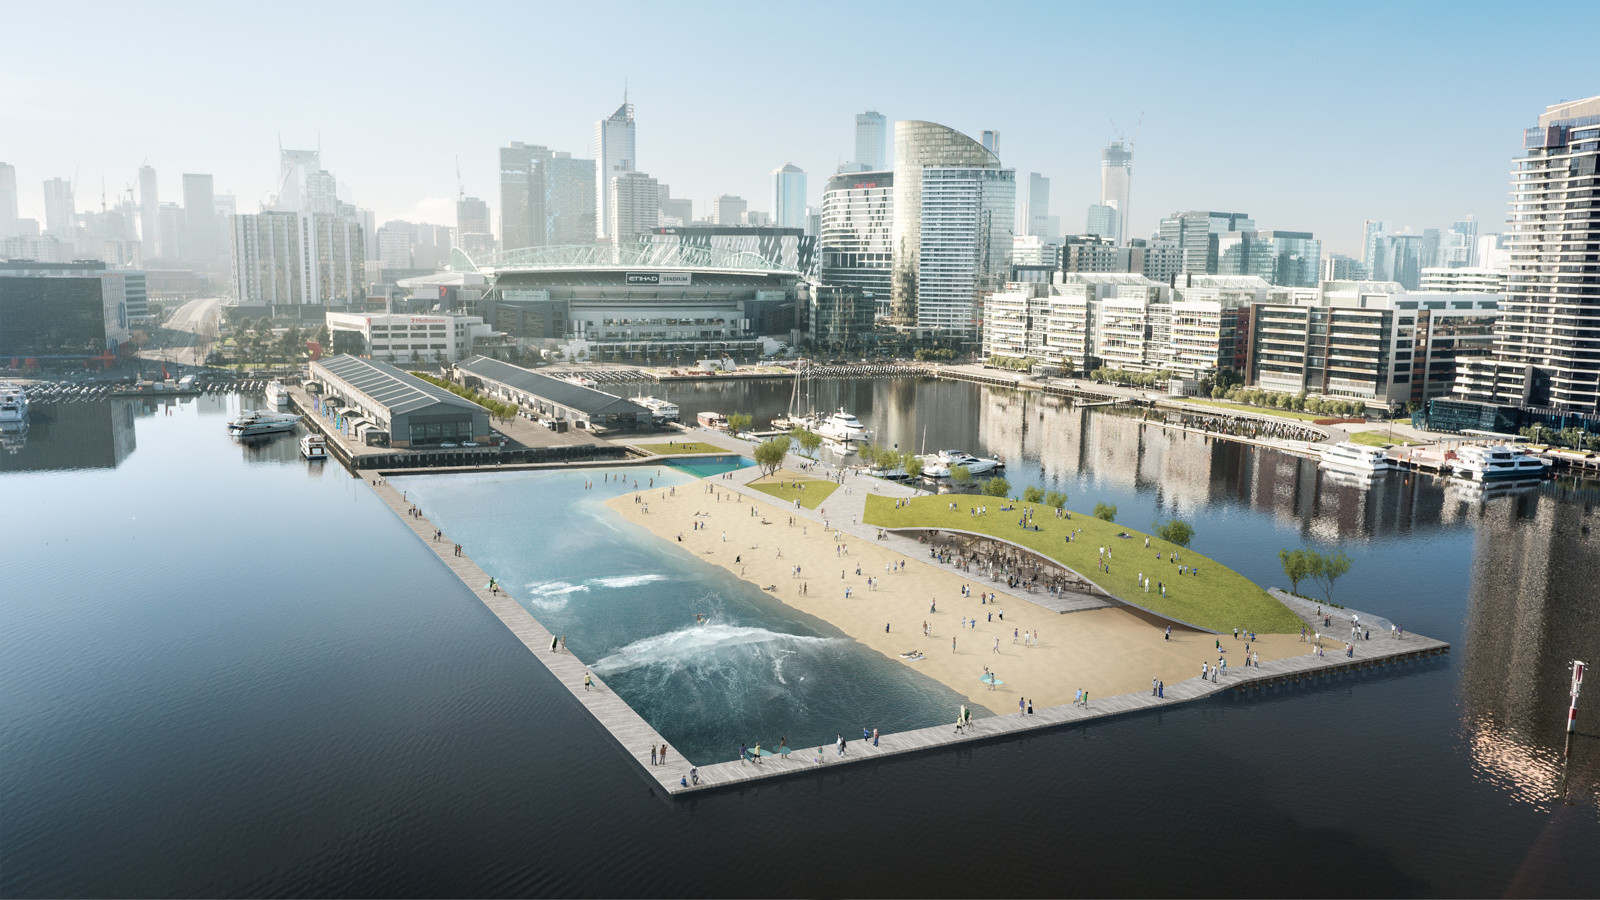 Damian Rogers Proposes Surf Park for Melbourne's Docklands, © Damian Rogers Architecture, Arup and Squint/Opera